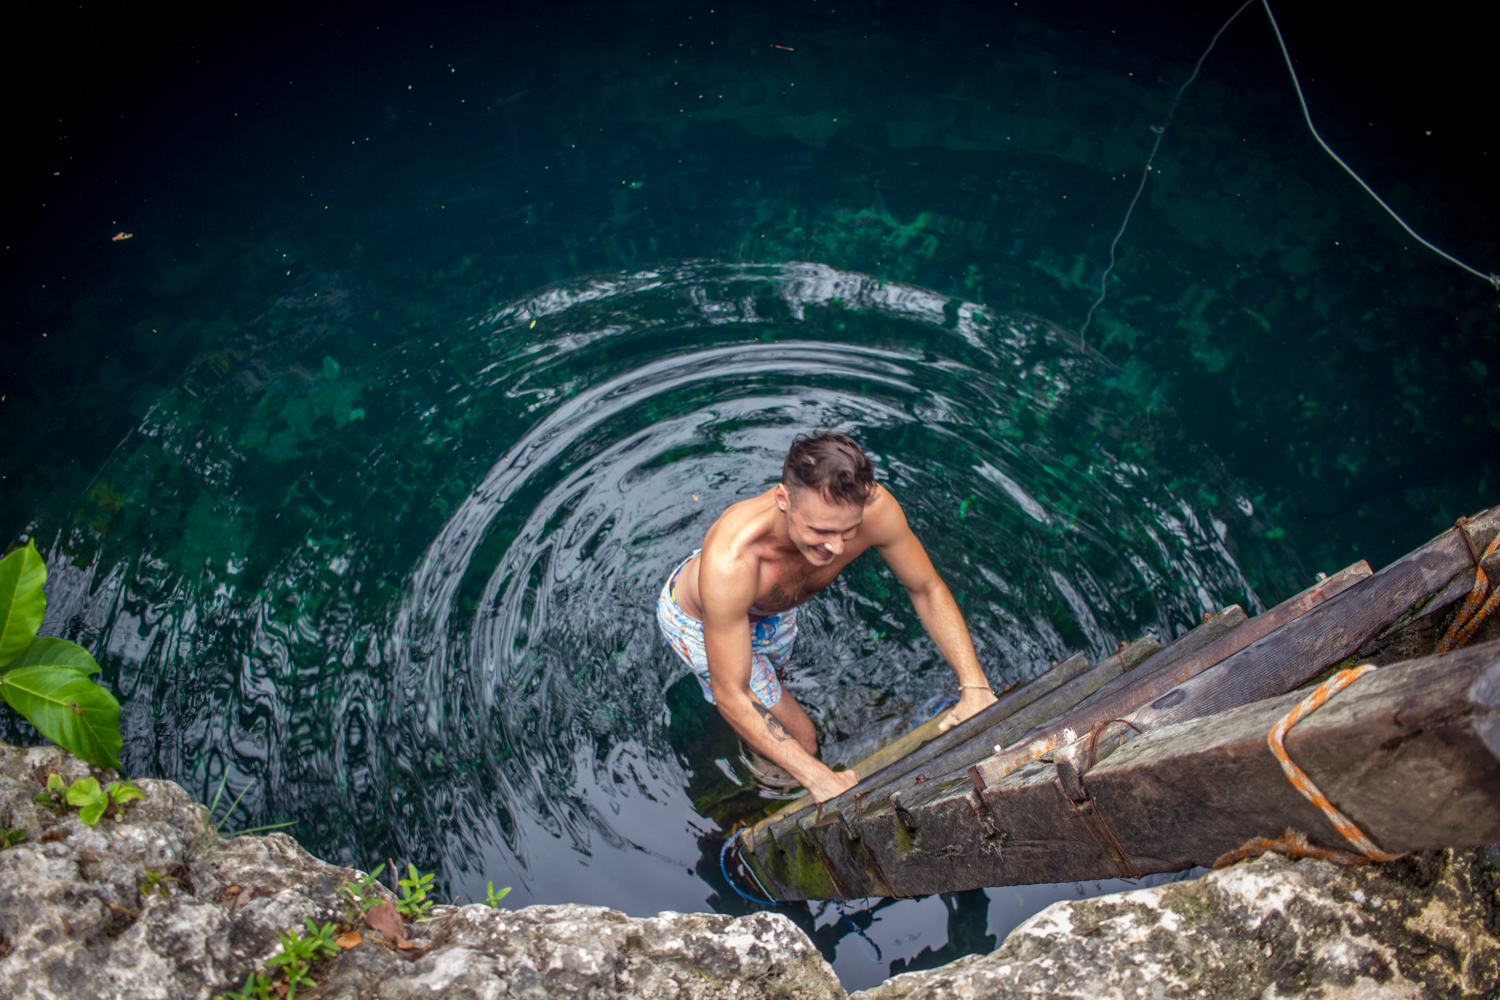 Exploring the cenotes in Tulum, Mexico